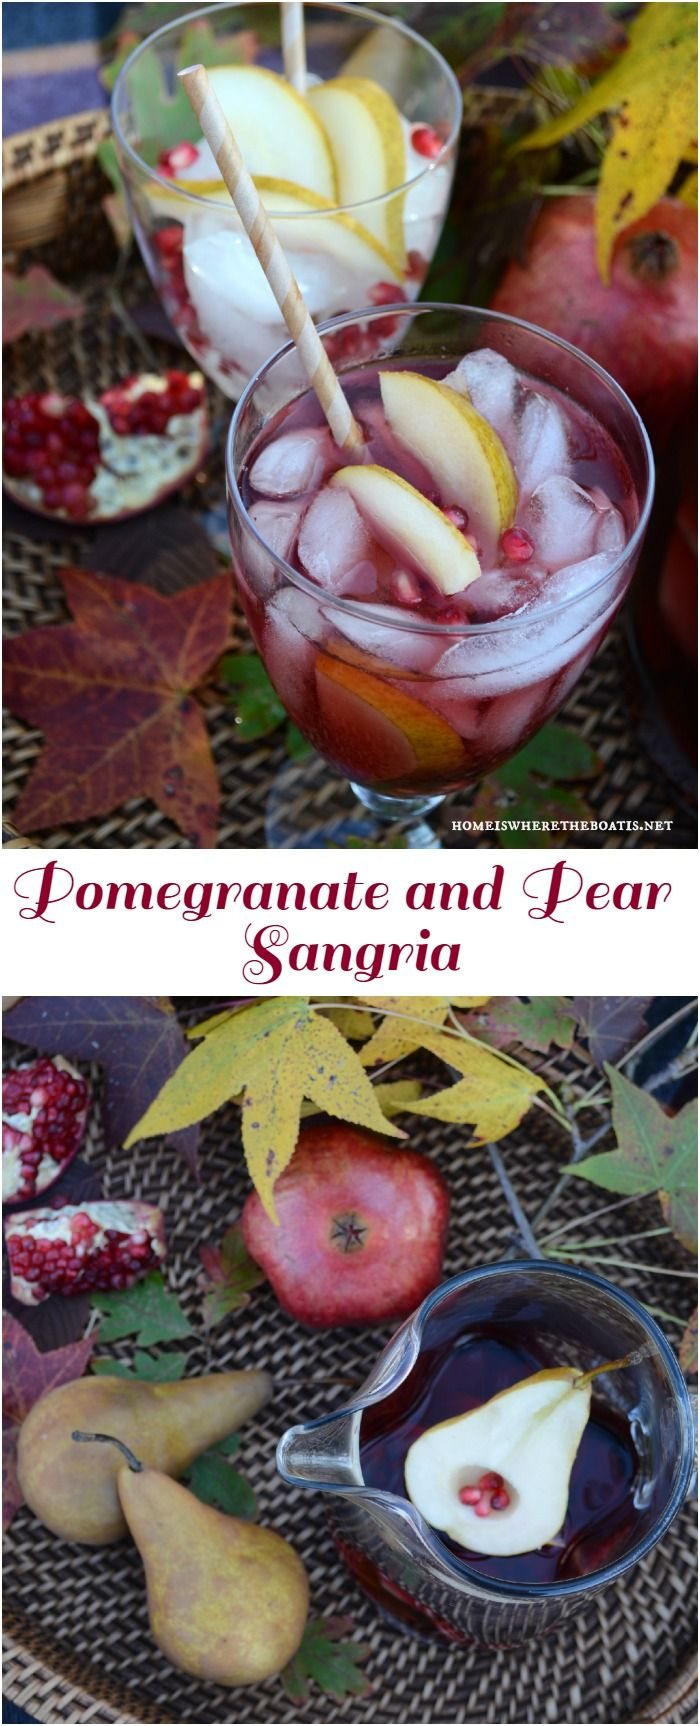 Pomegranate and Pear Sangria